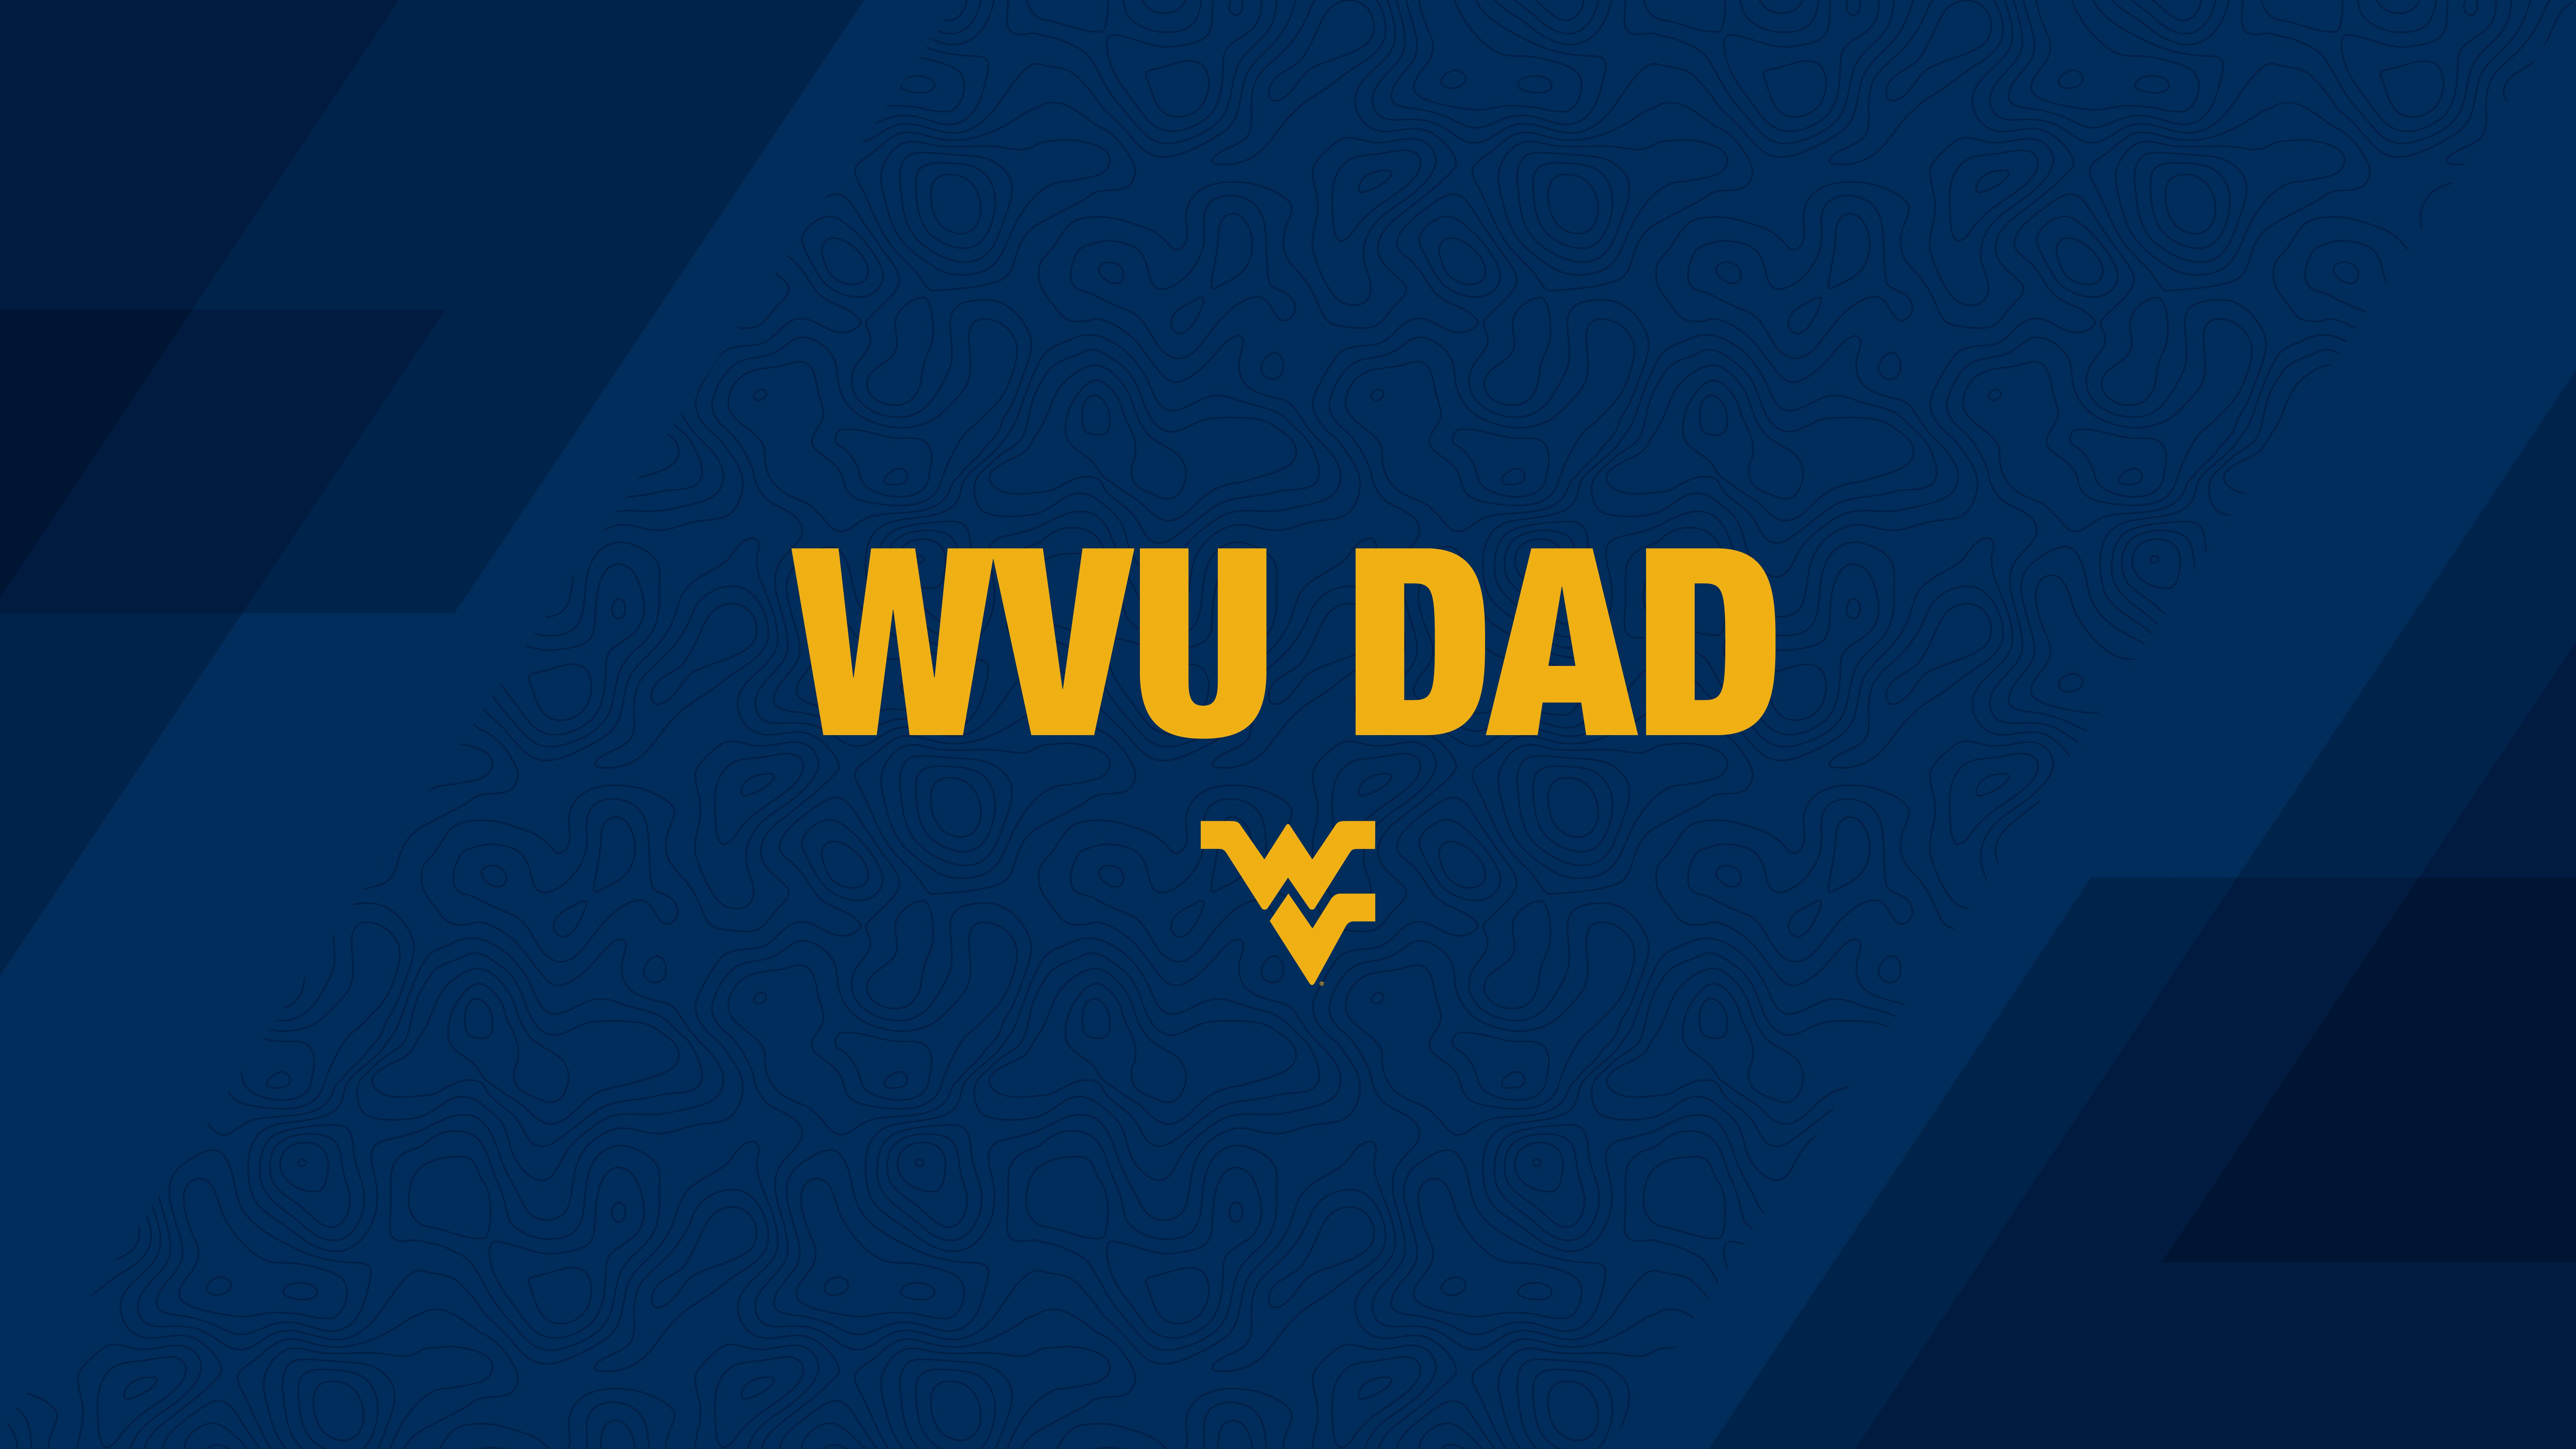 WVU Dad PC or tablet wallpaper